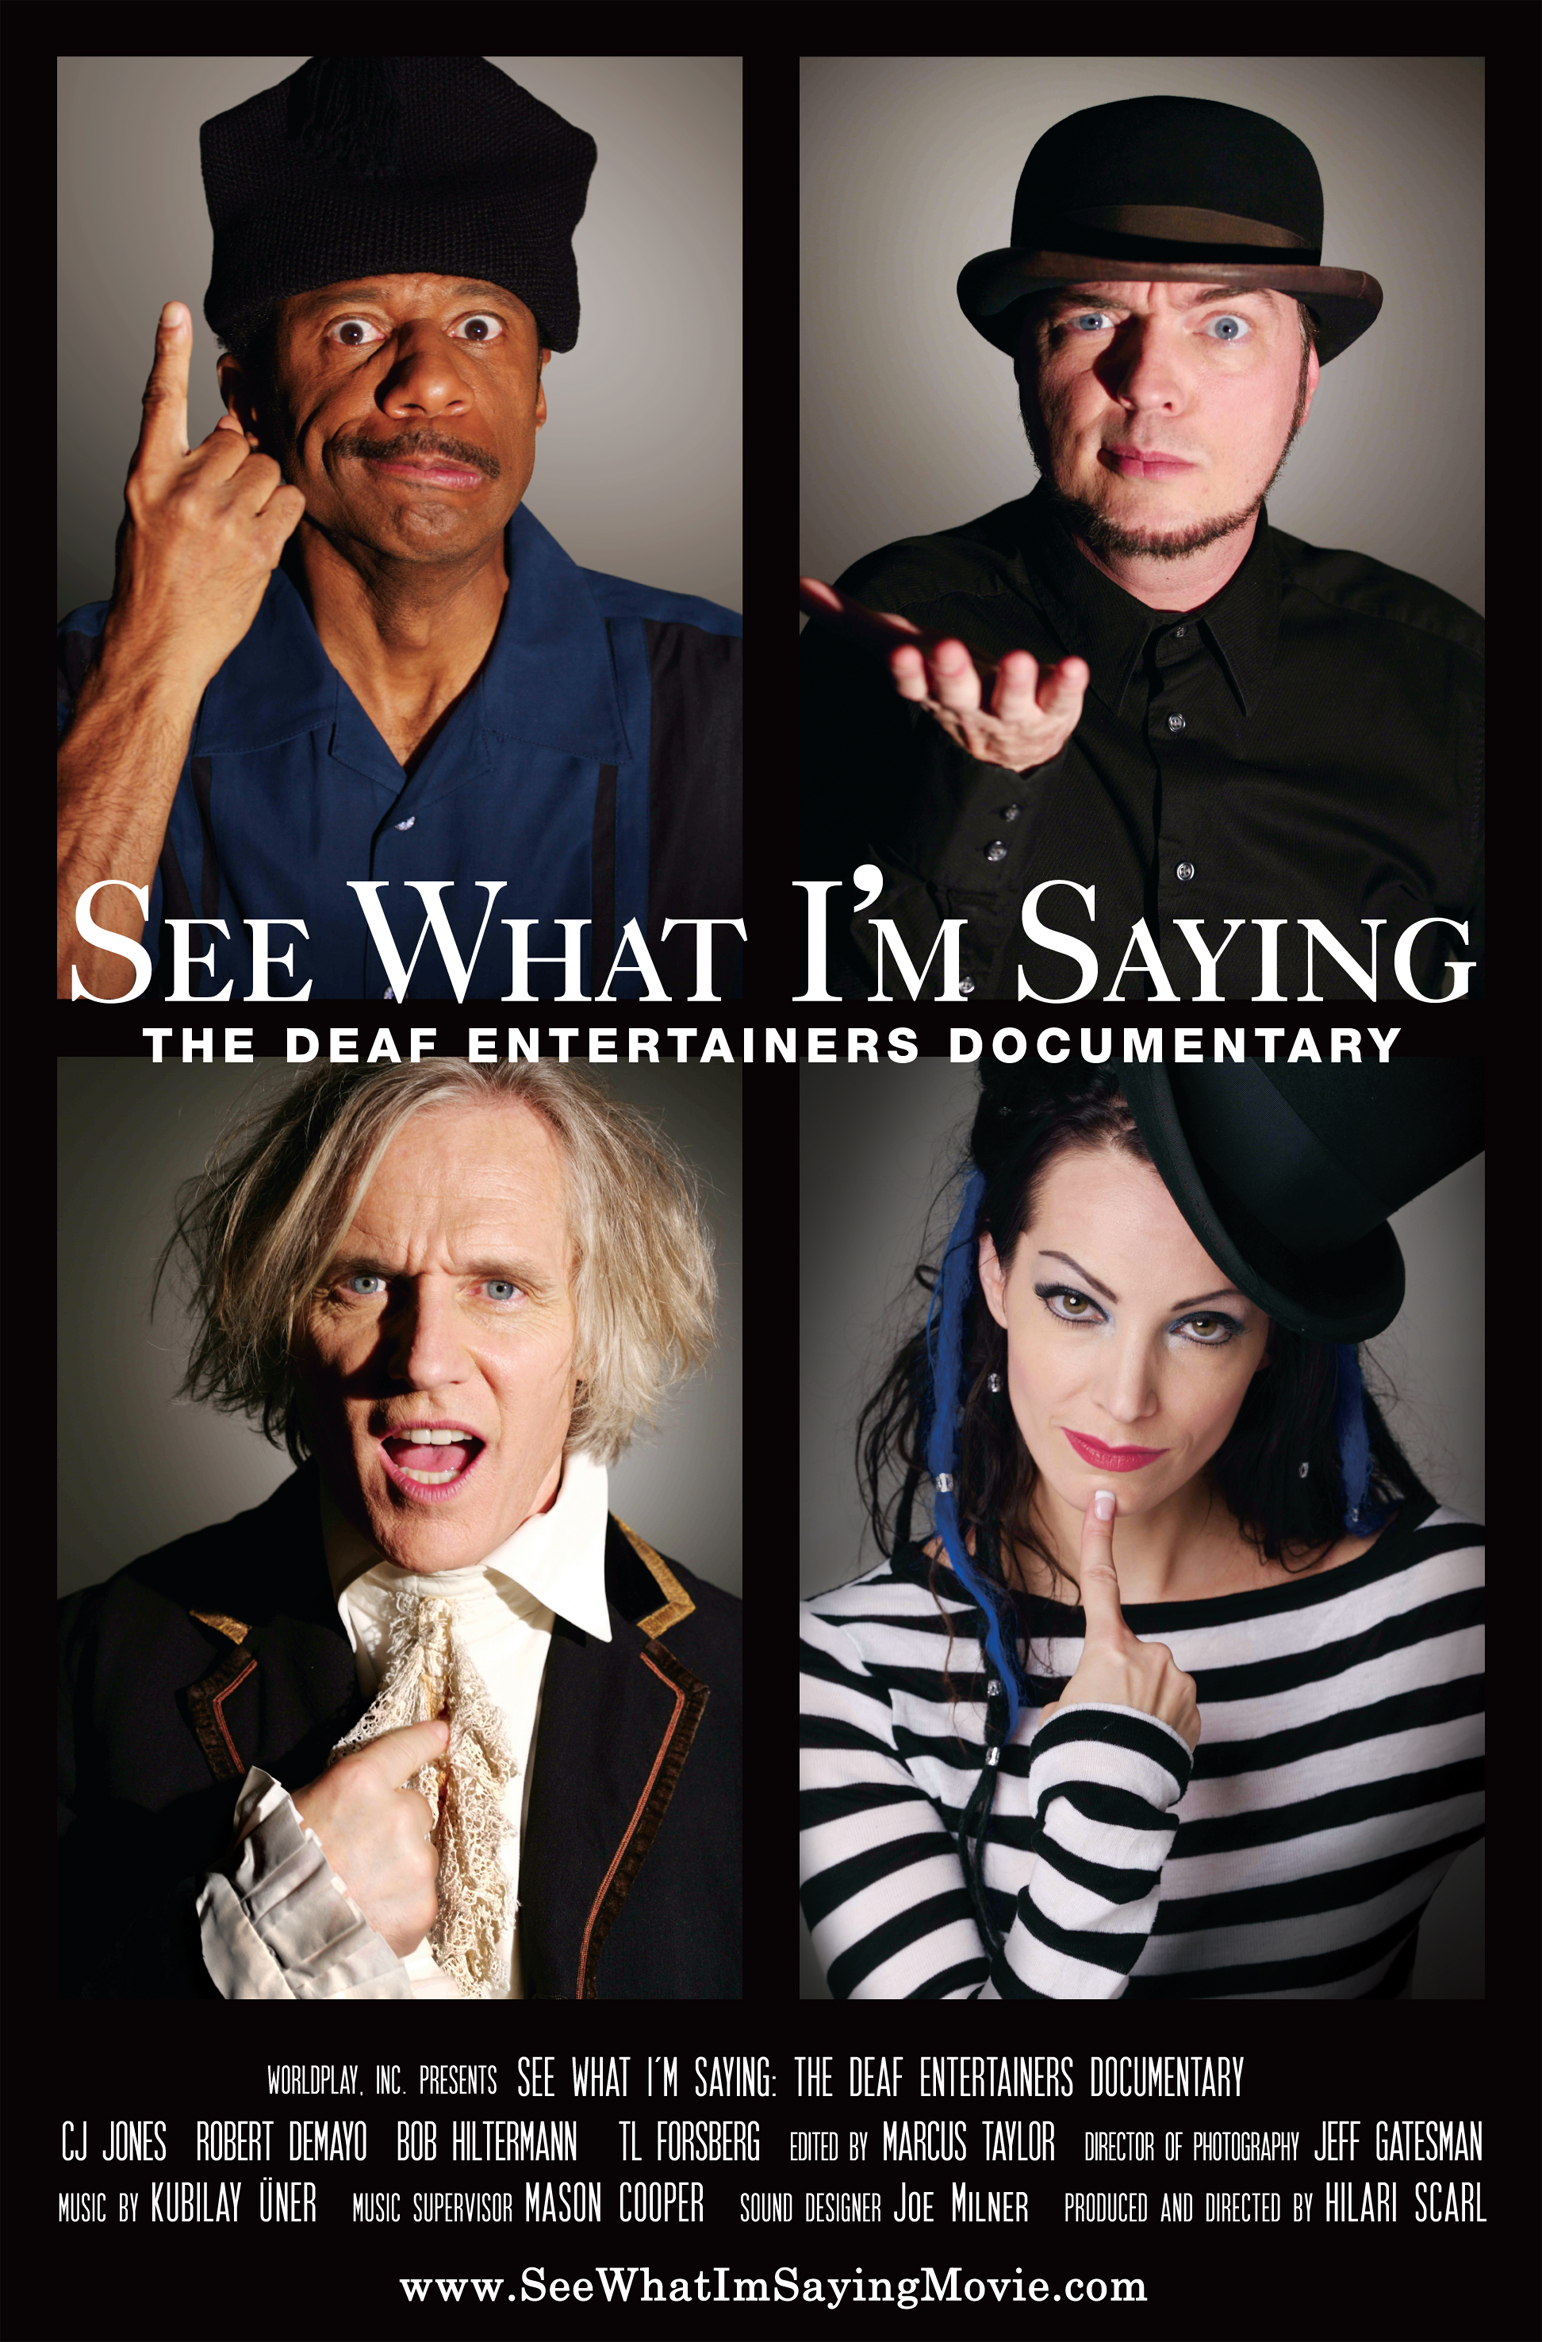 Poster for Wordplay, Inc.'s feature documentary  See What I'm Saying , directed by Hilari Scarl.